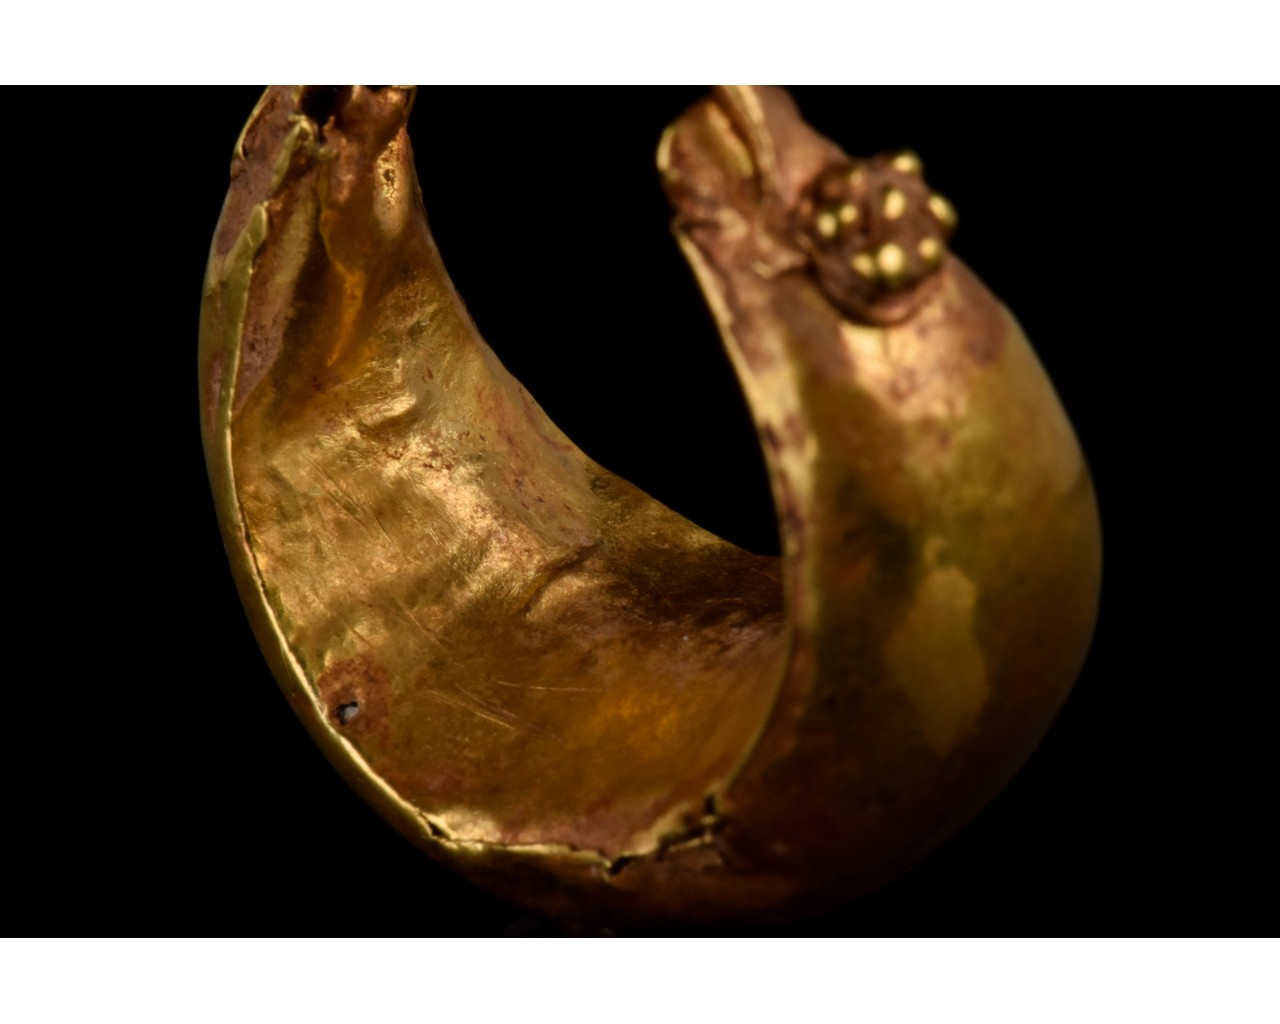 PAIR OF ROMAN GOLD BOAT SHAPED EARRINGS - FULL ANALYSIS - Image 7 of 11